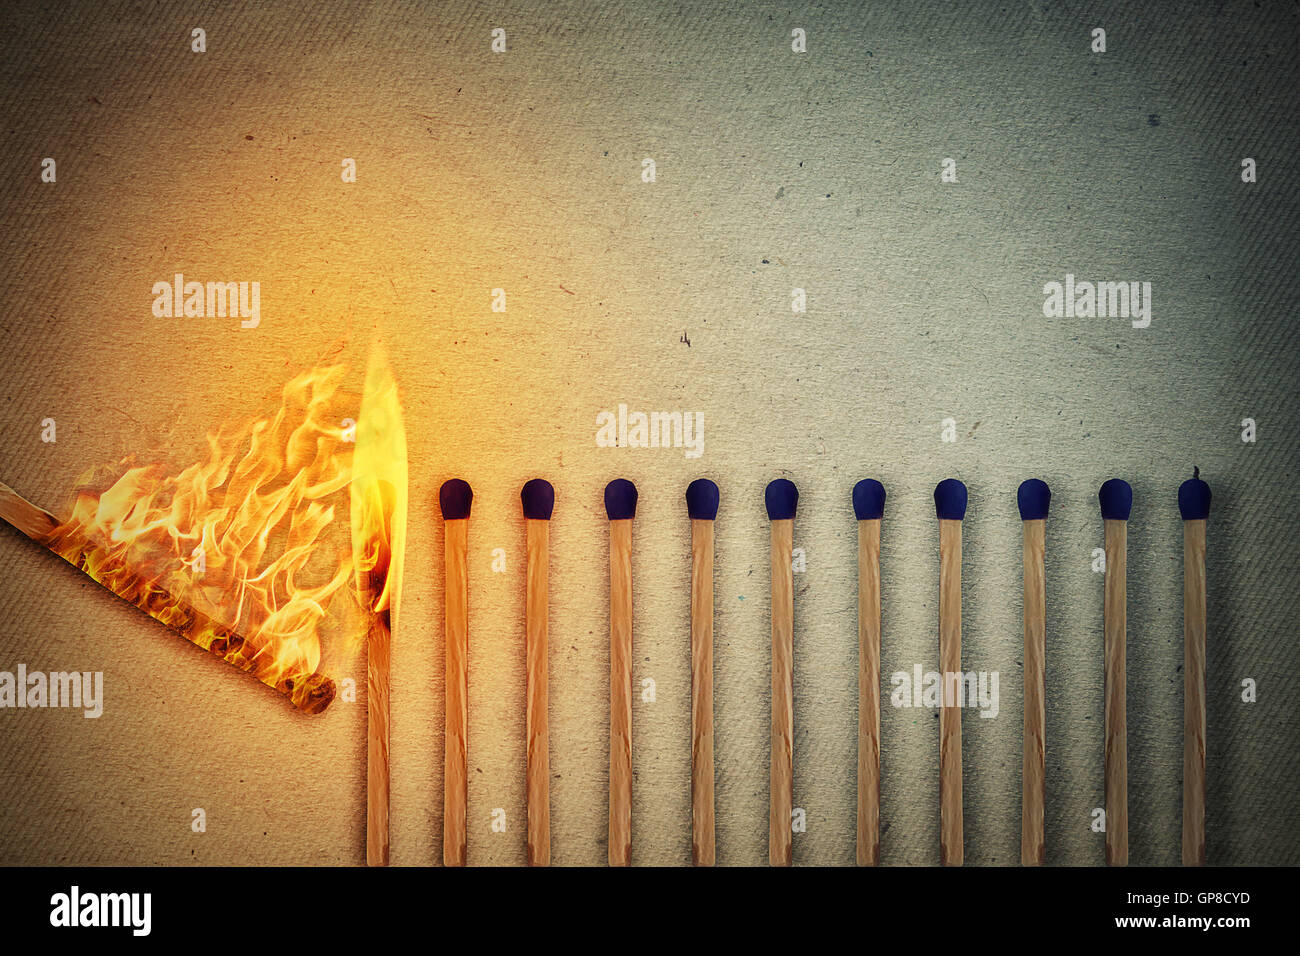 Burning match setting fire to its whole neighbors, a metaphor for ideas and inspiration. Leadership concept Stock Photo